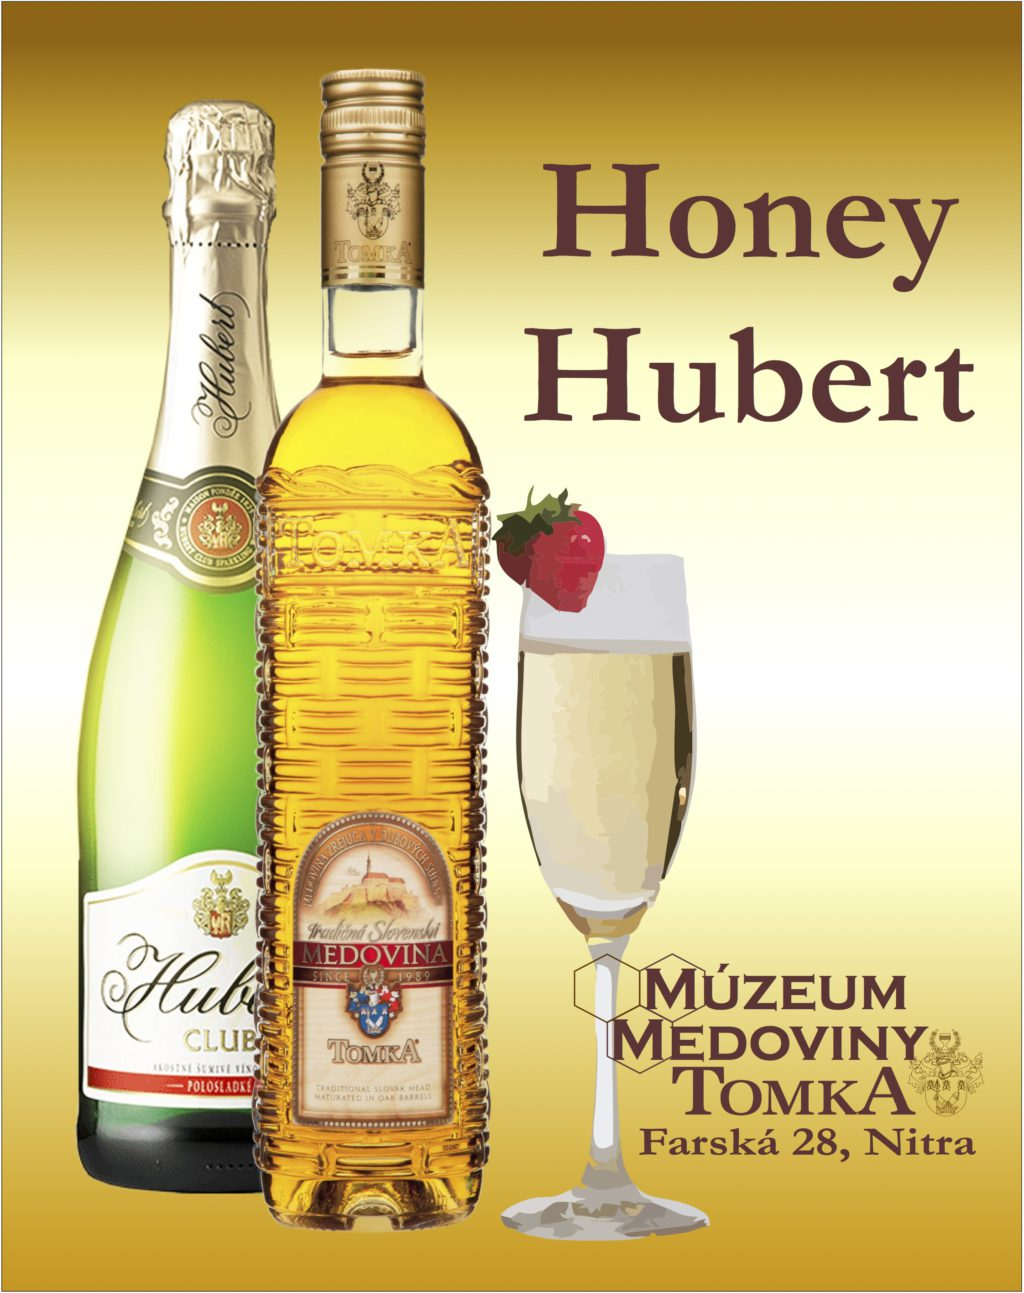 Honey Hubert